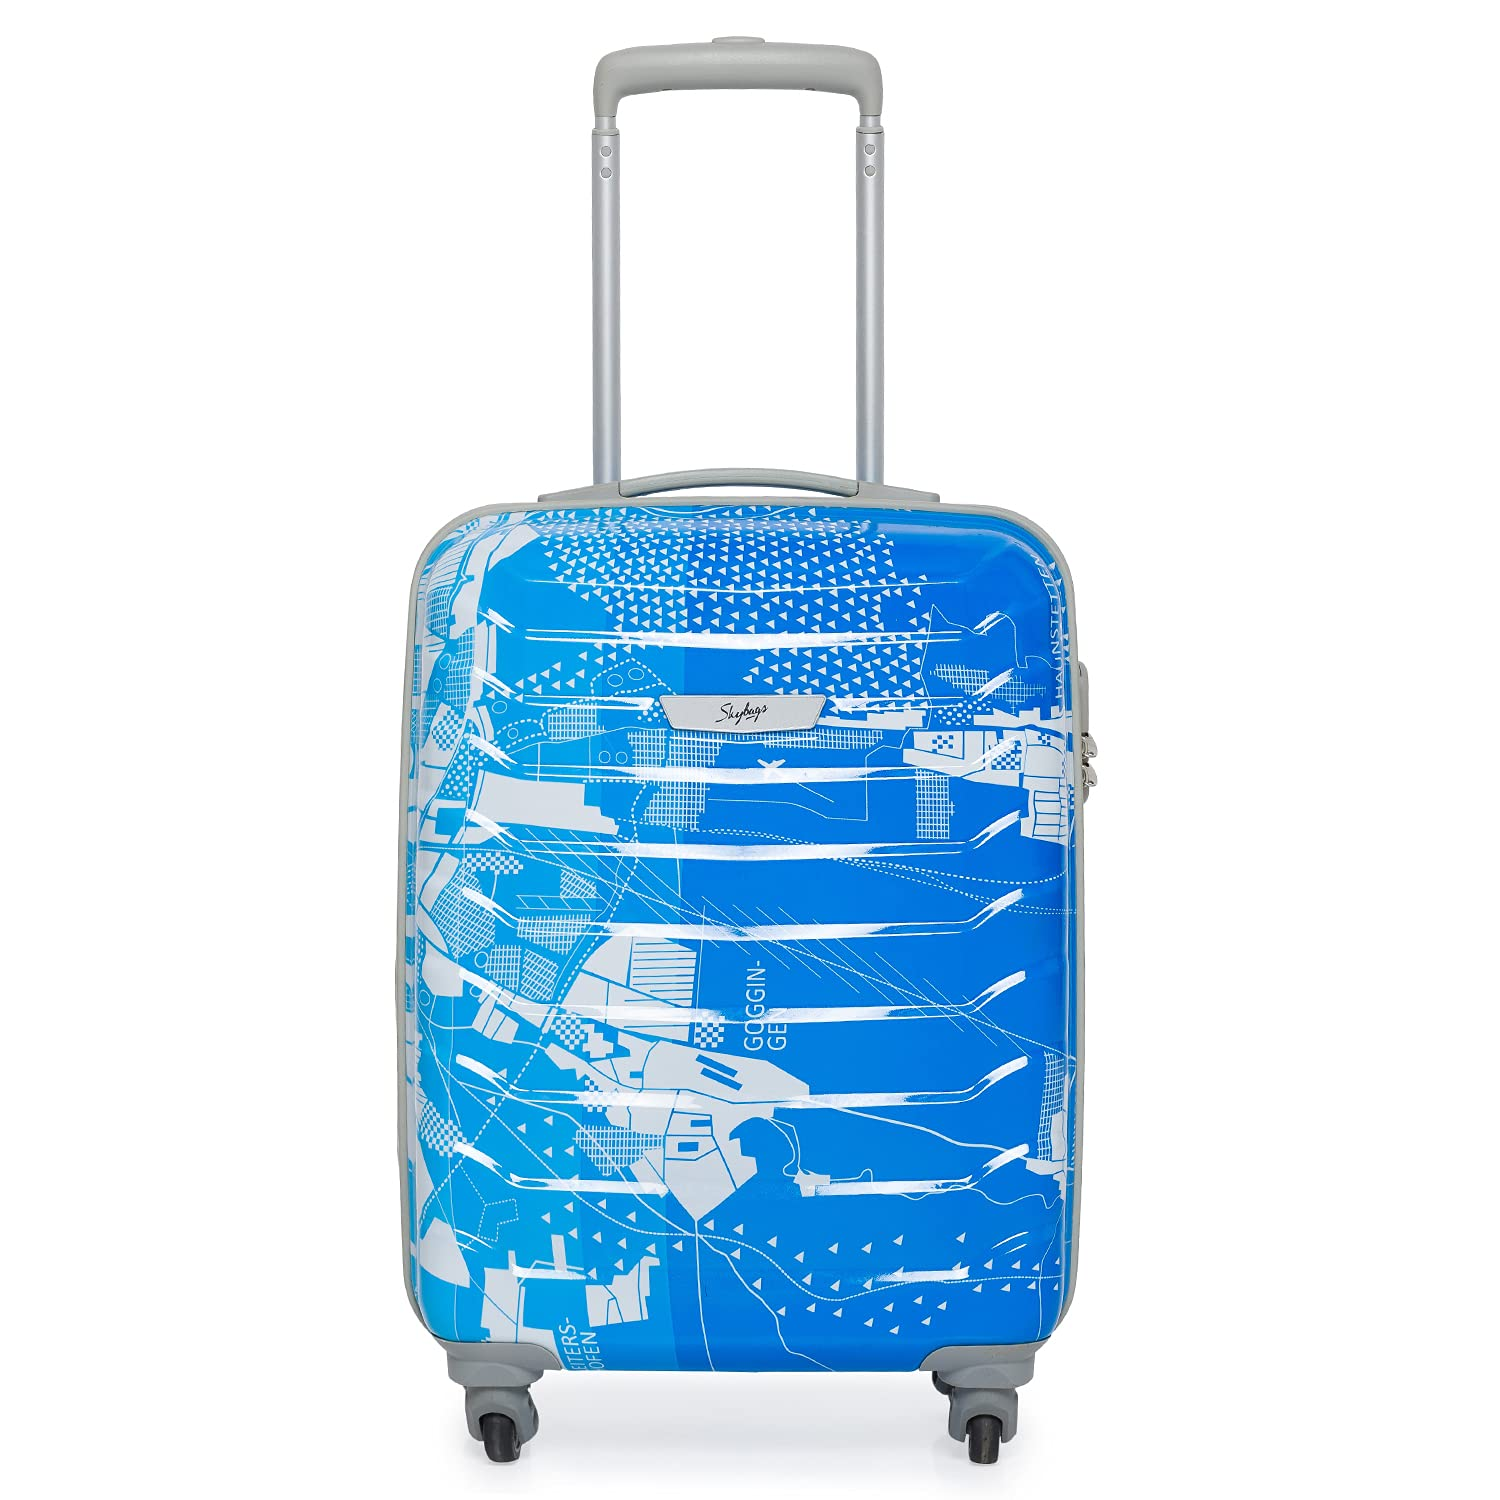 Skybags 55 Cms Polycarbonate Blue Hardsided Cabin Luggage $31.01 Coupon